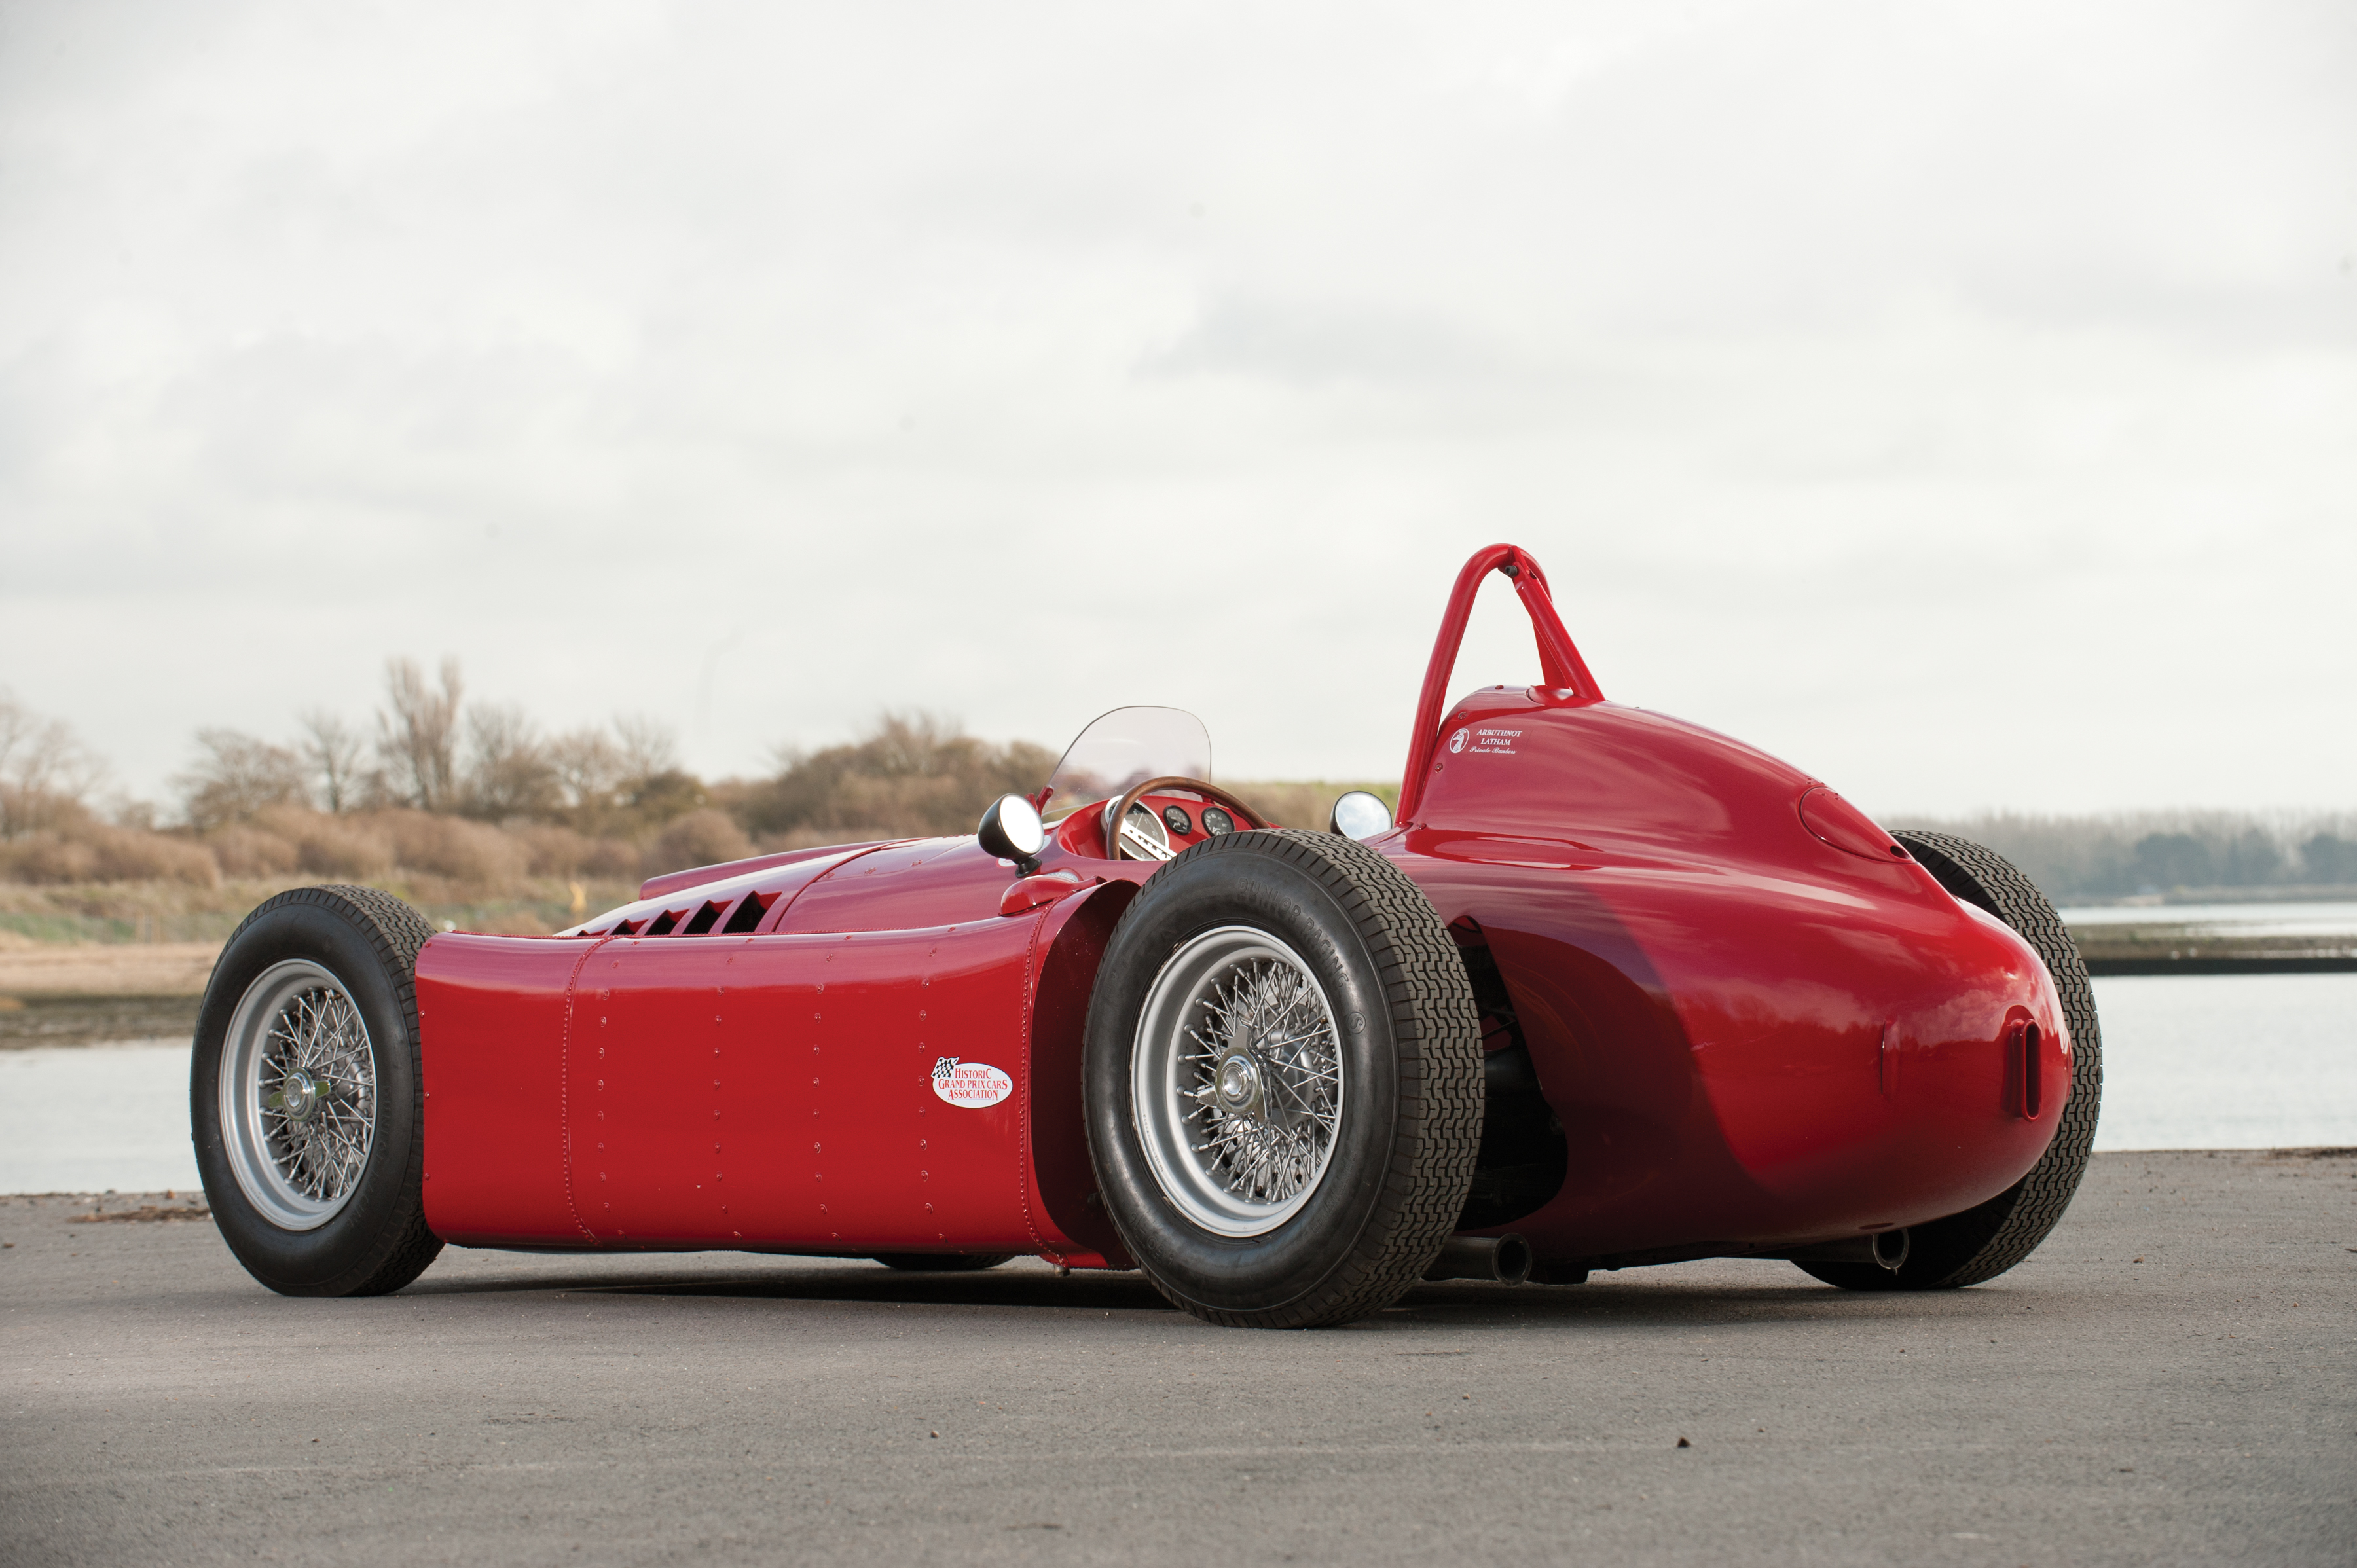 1955 lancia d50a formula one build race party hopes soared for the 1955 formula one season at monaco in may 1955 ascari and fangio set identical times of 1411 and started the race side by side from vanachro Gallery